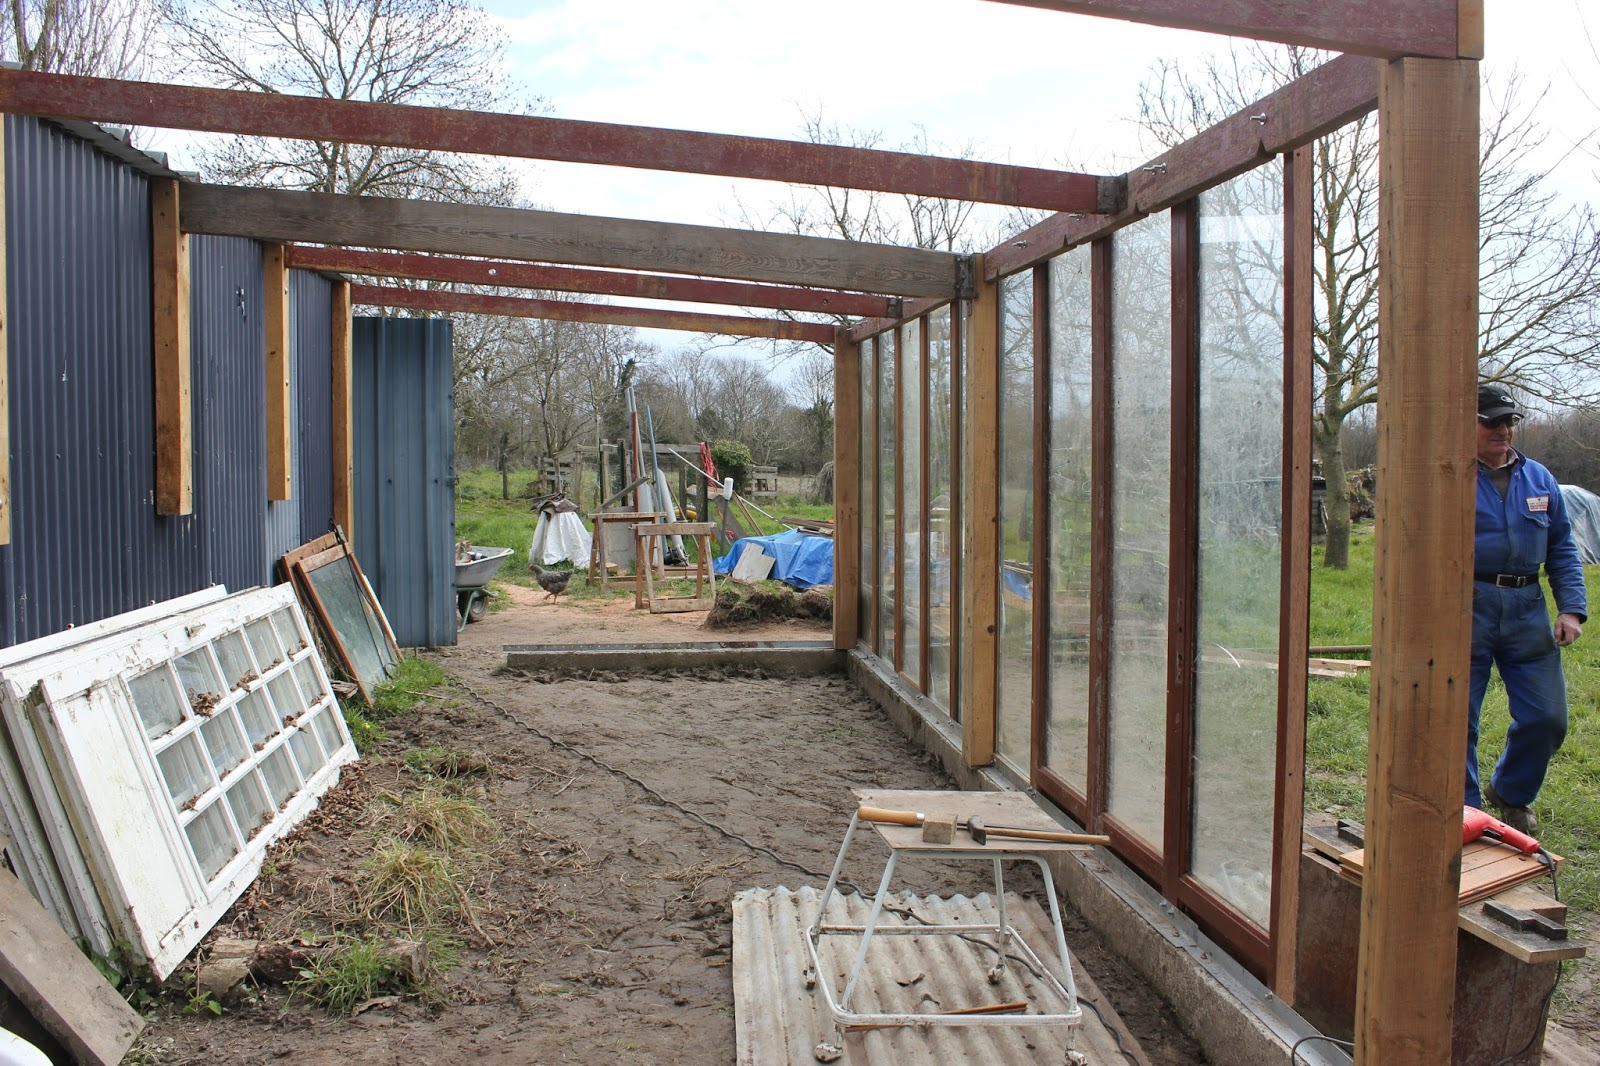 Recuperated glass greenhouse under construction